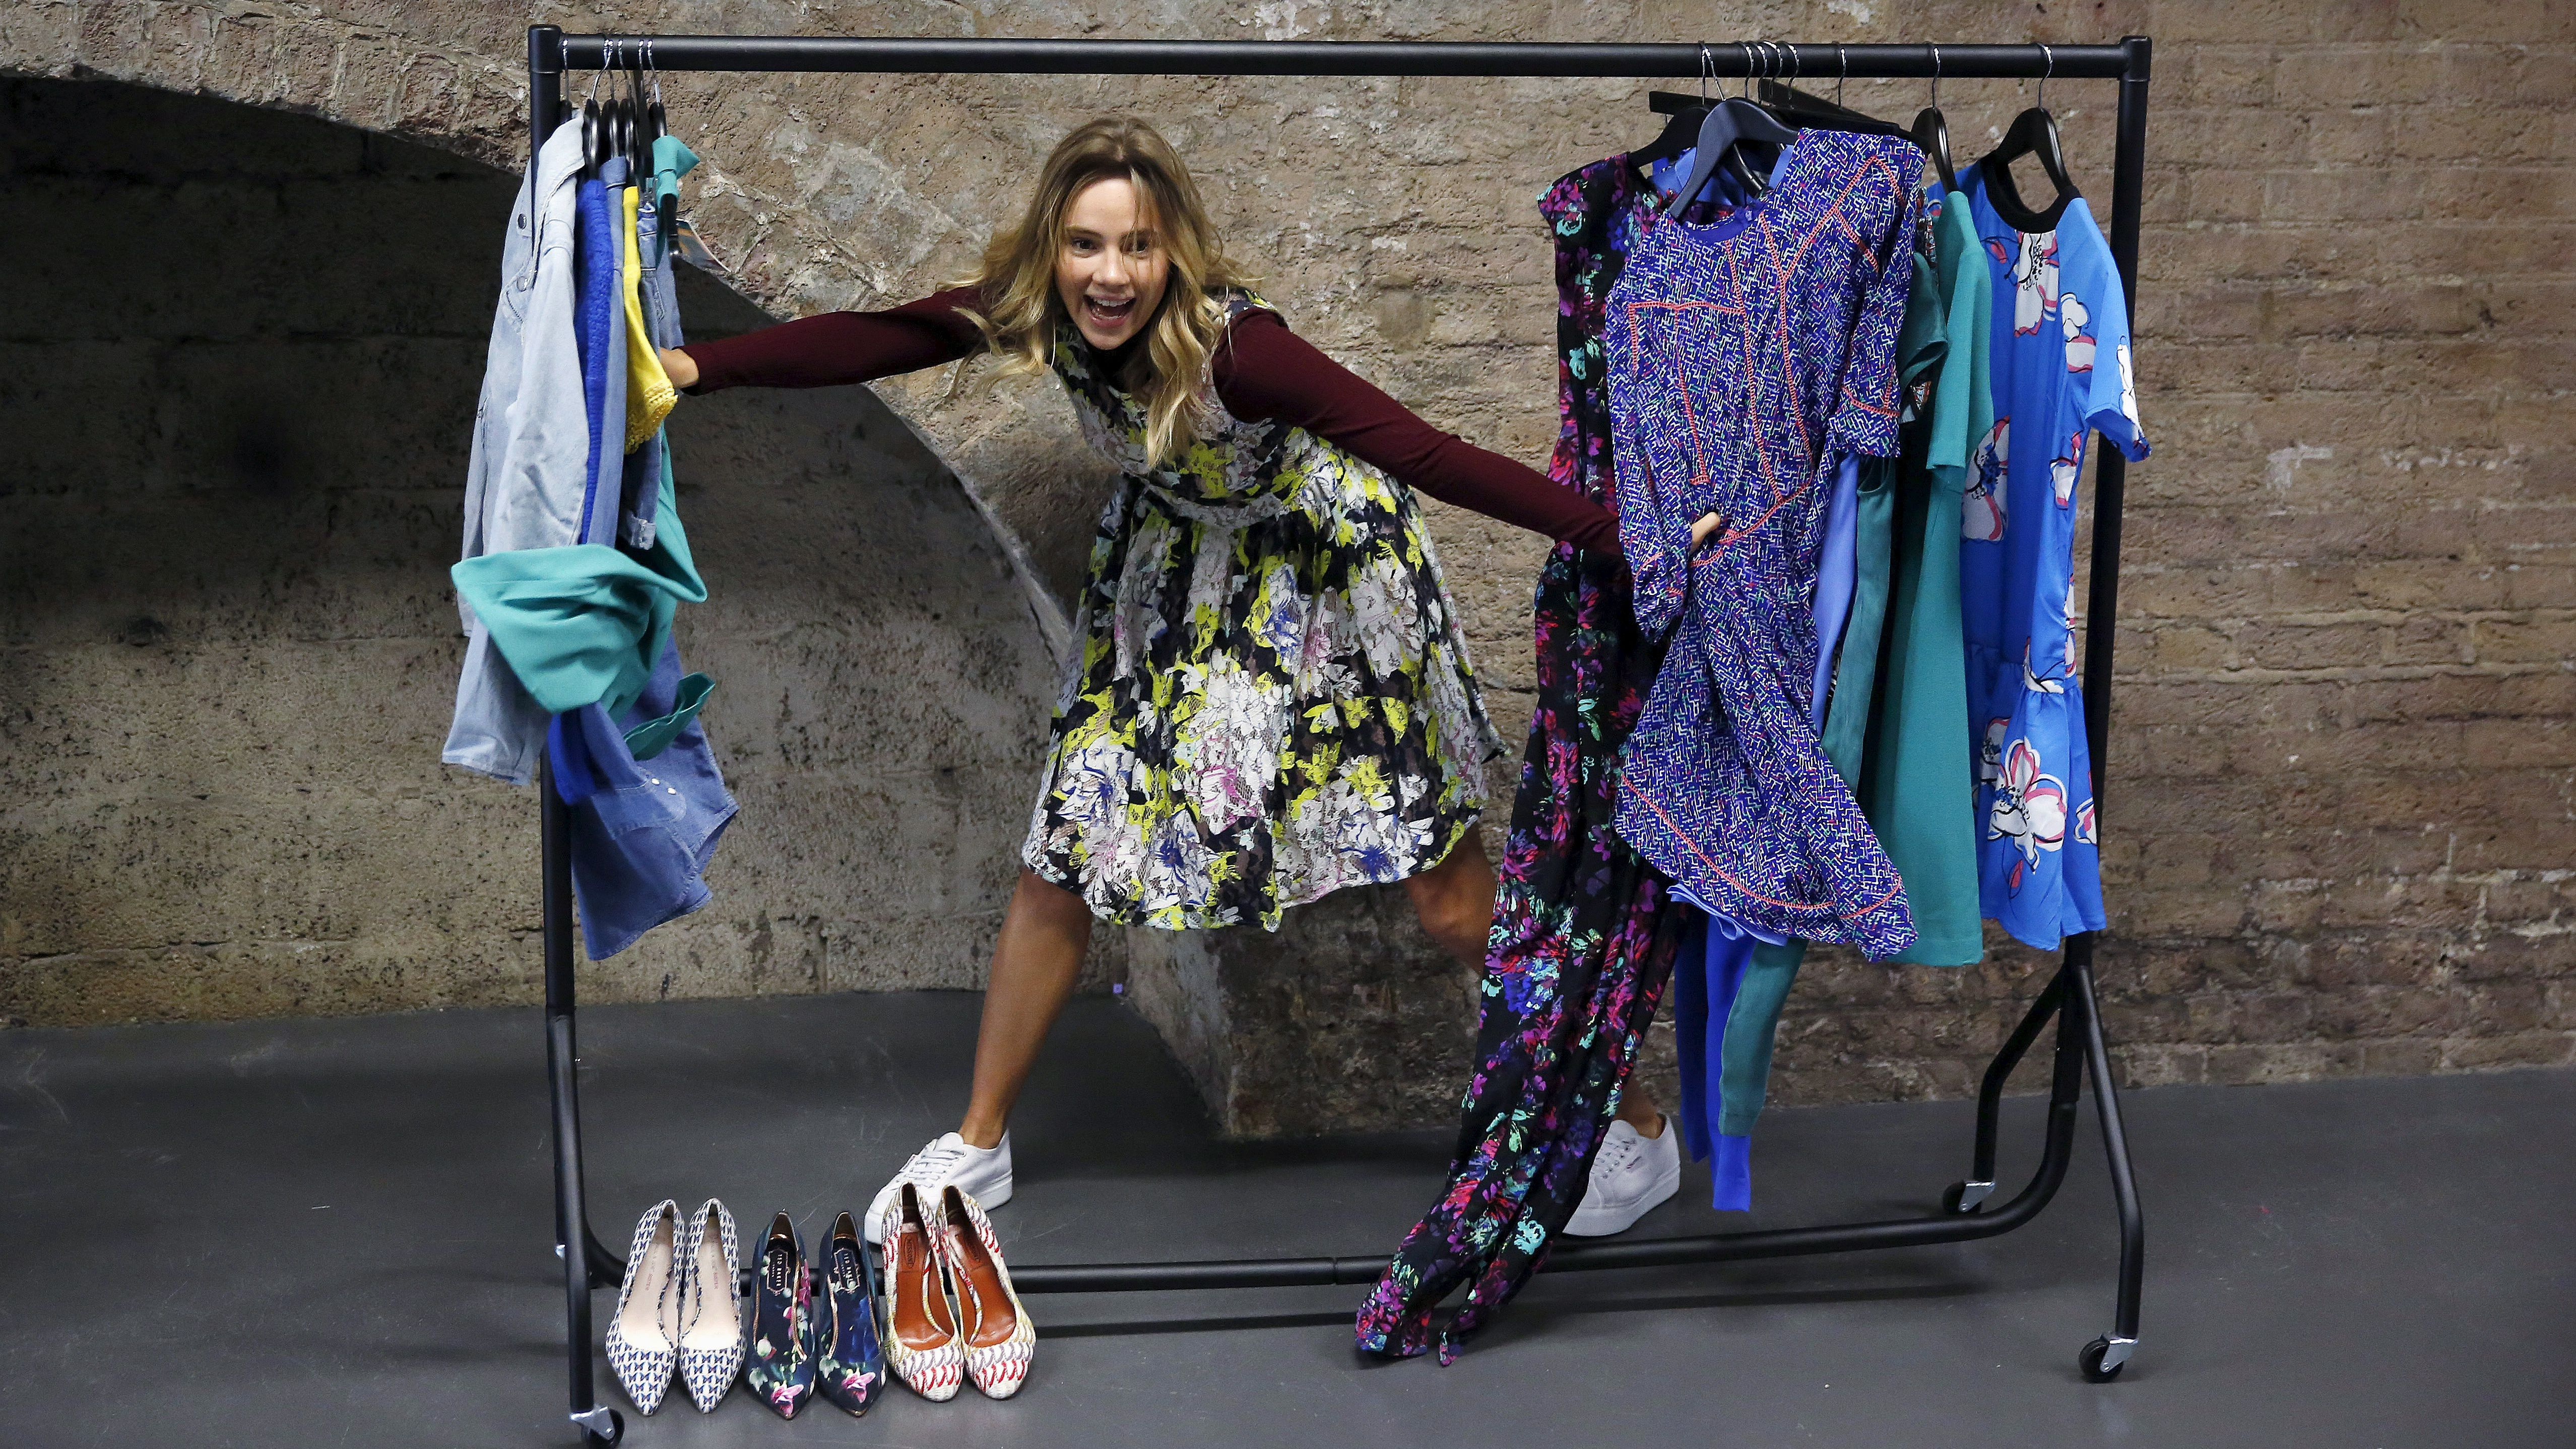 Amazon Fashion European Brand Ambassador Suki Waterhouse poses for photographers at the launch of the Amazon Fashion Photography Studio in east London, Britain July 23, 2015. Amazon's new 46,000 square foot fashion photography studio will produce more than half a million images over the next 12 months to support its rapidly growing fashion business.